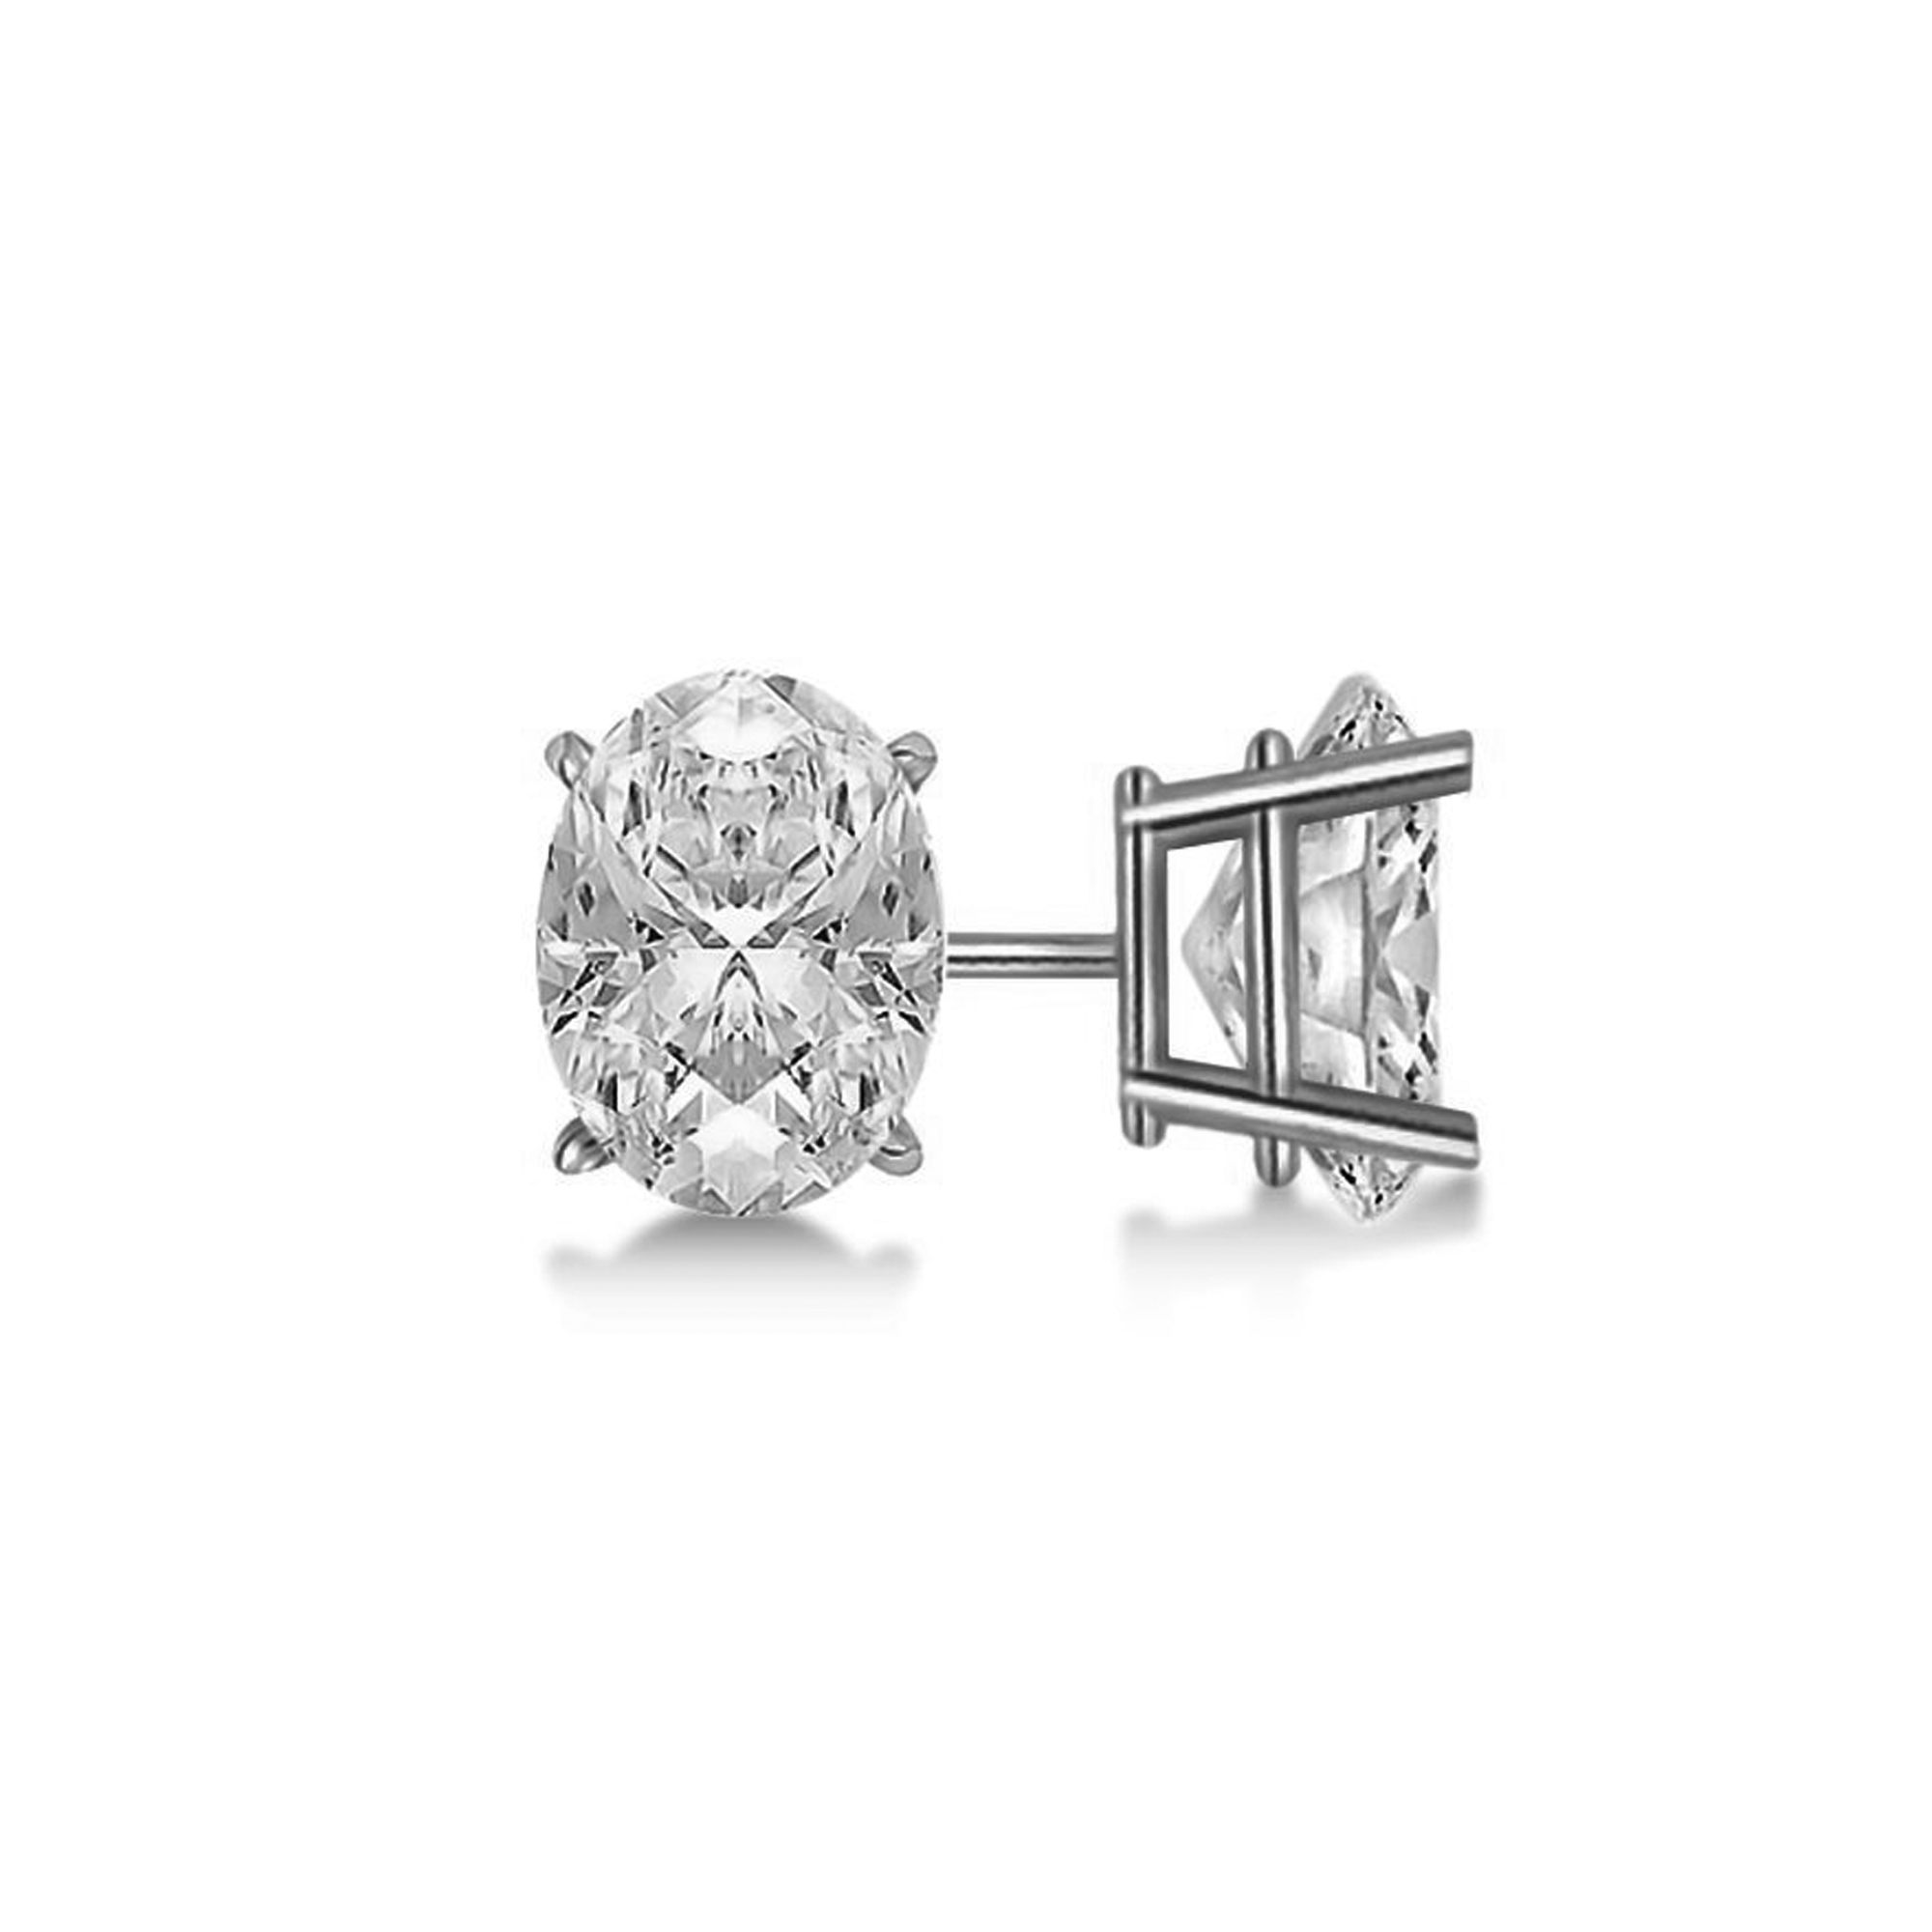 earrings charles one exclusive moissanite stud cushion itm jewelers forever h platinum design colvard tcw j